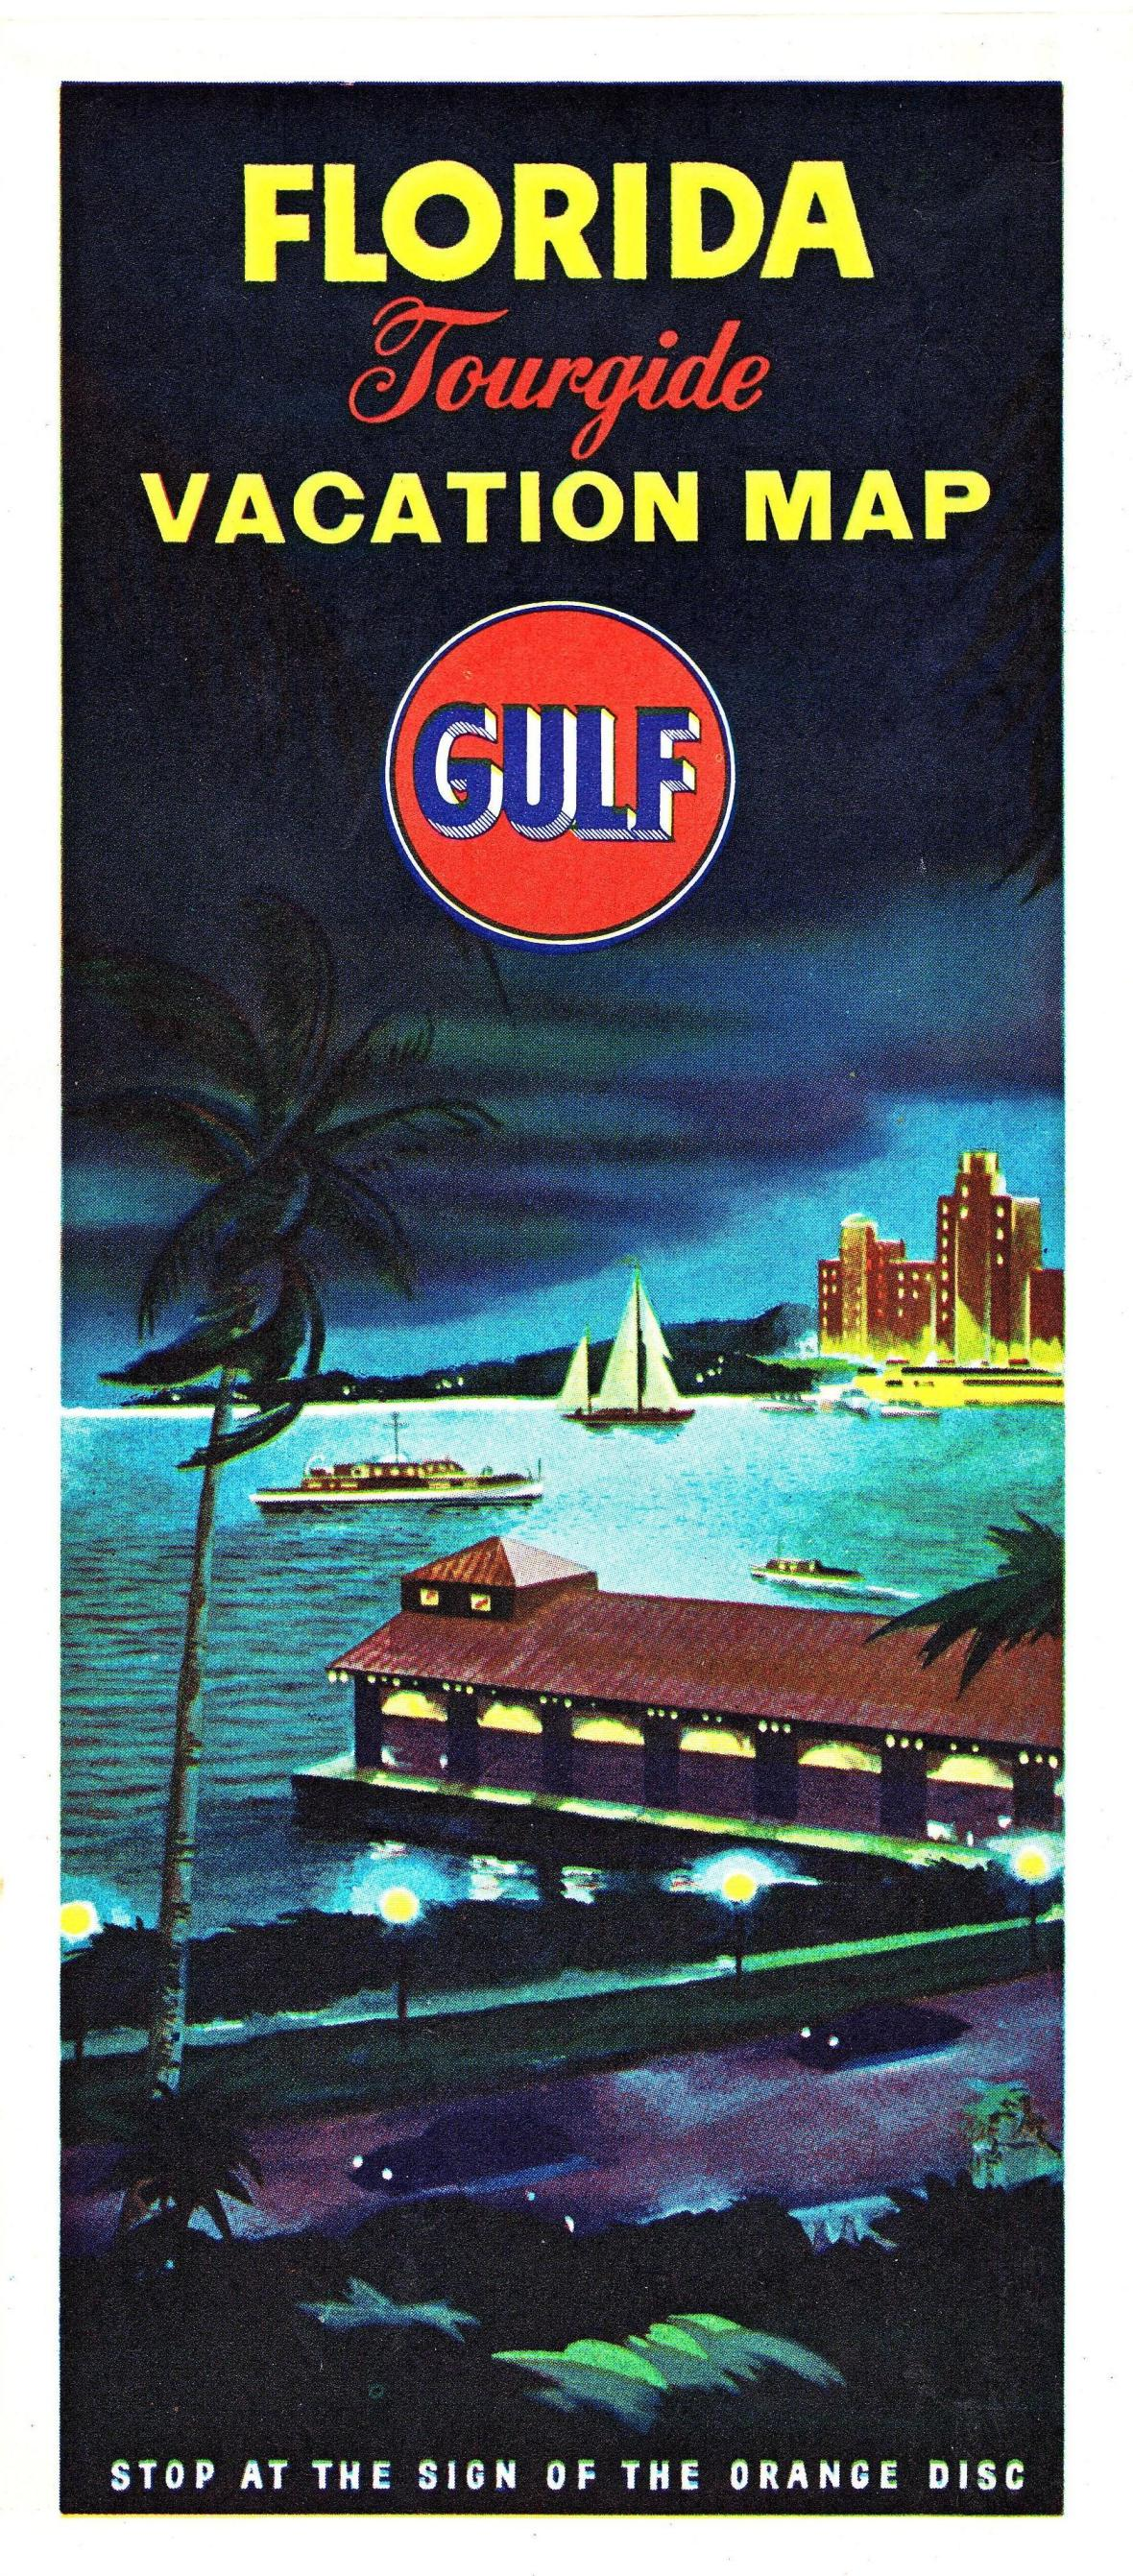 Gulf Oil Florida Tourguide Vacation Map cover - 1955